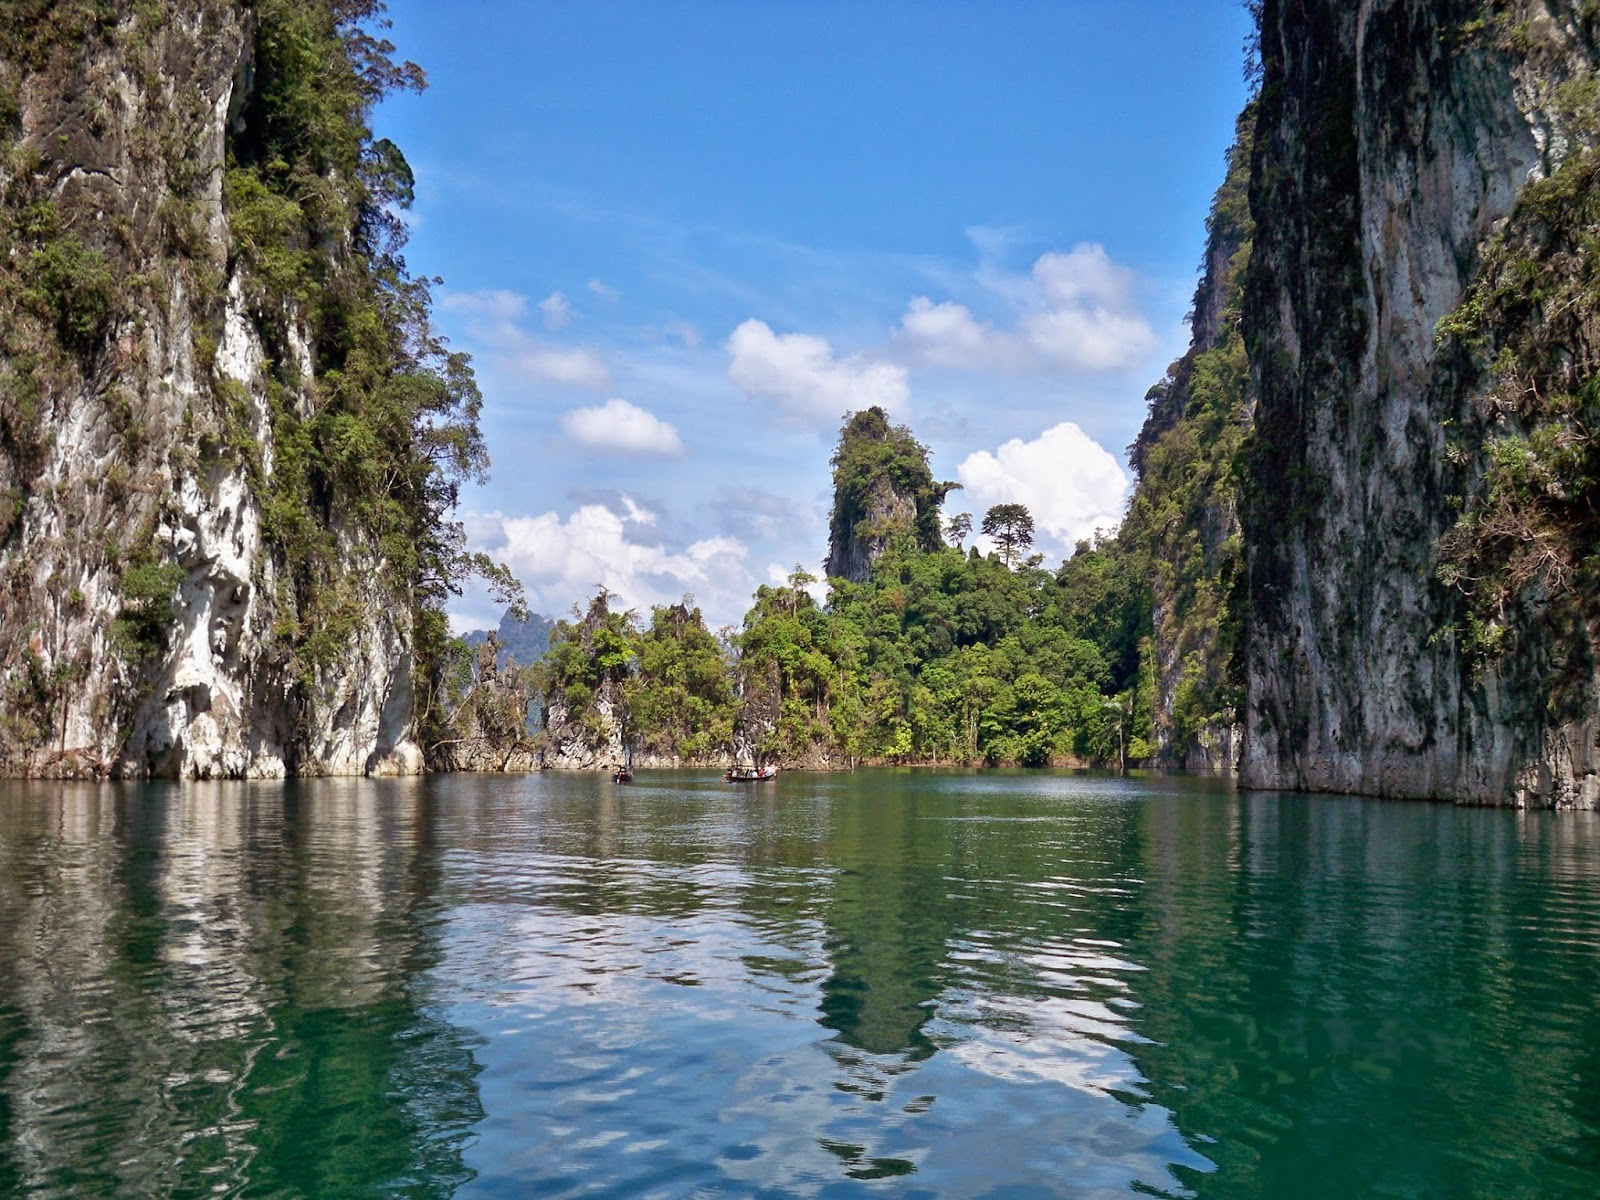 Der Chiew Larn See, Khao Sok National Park Thailand